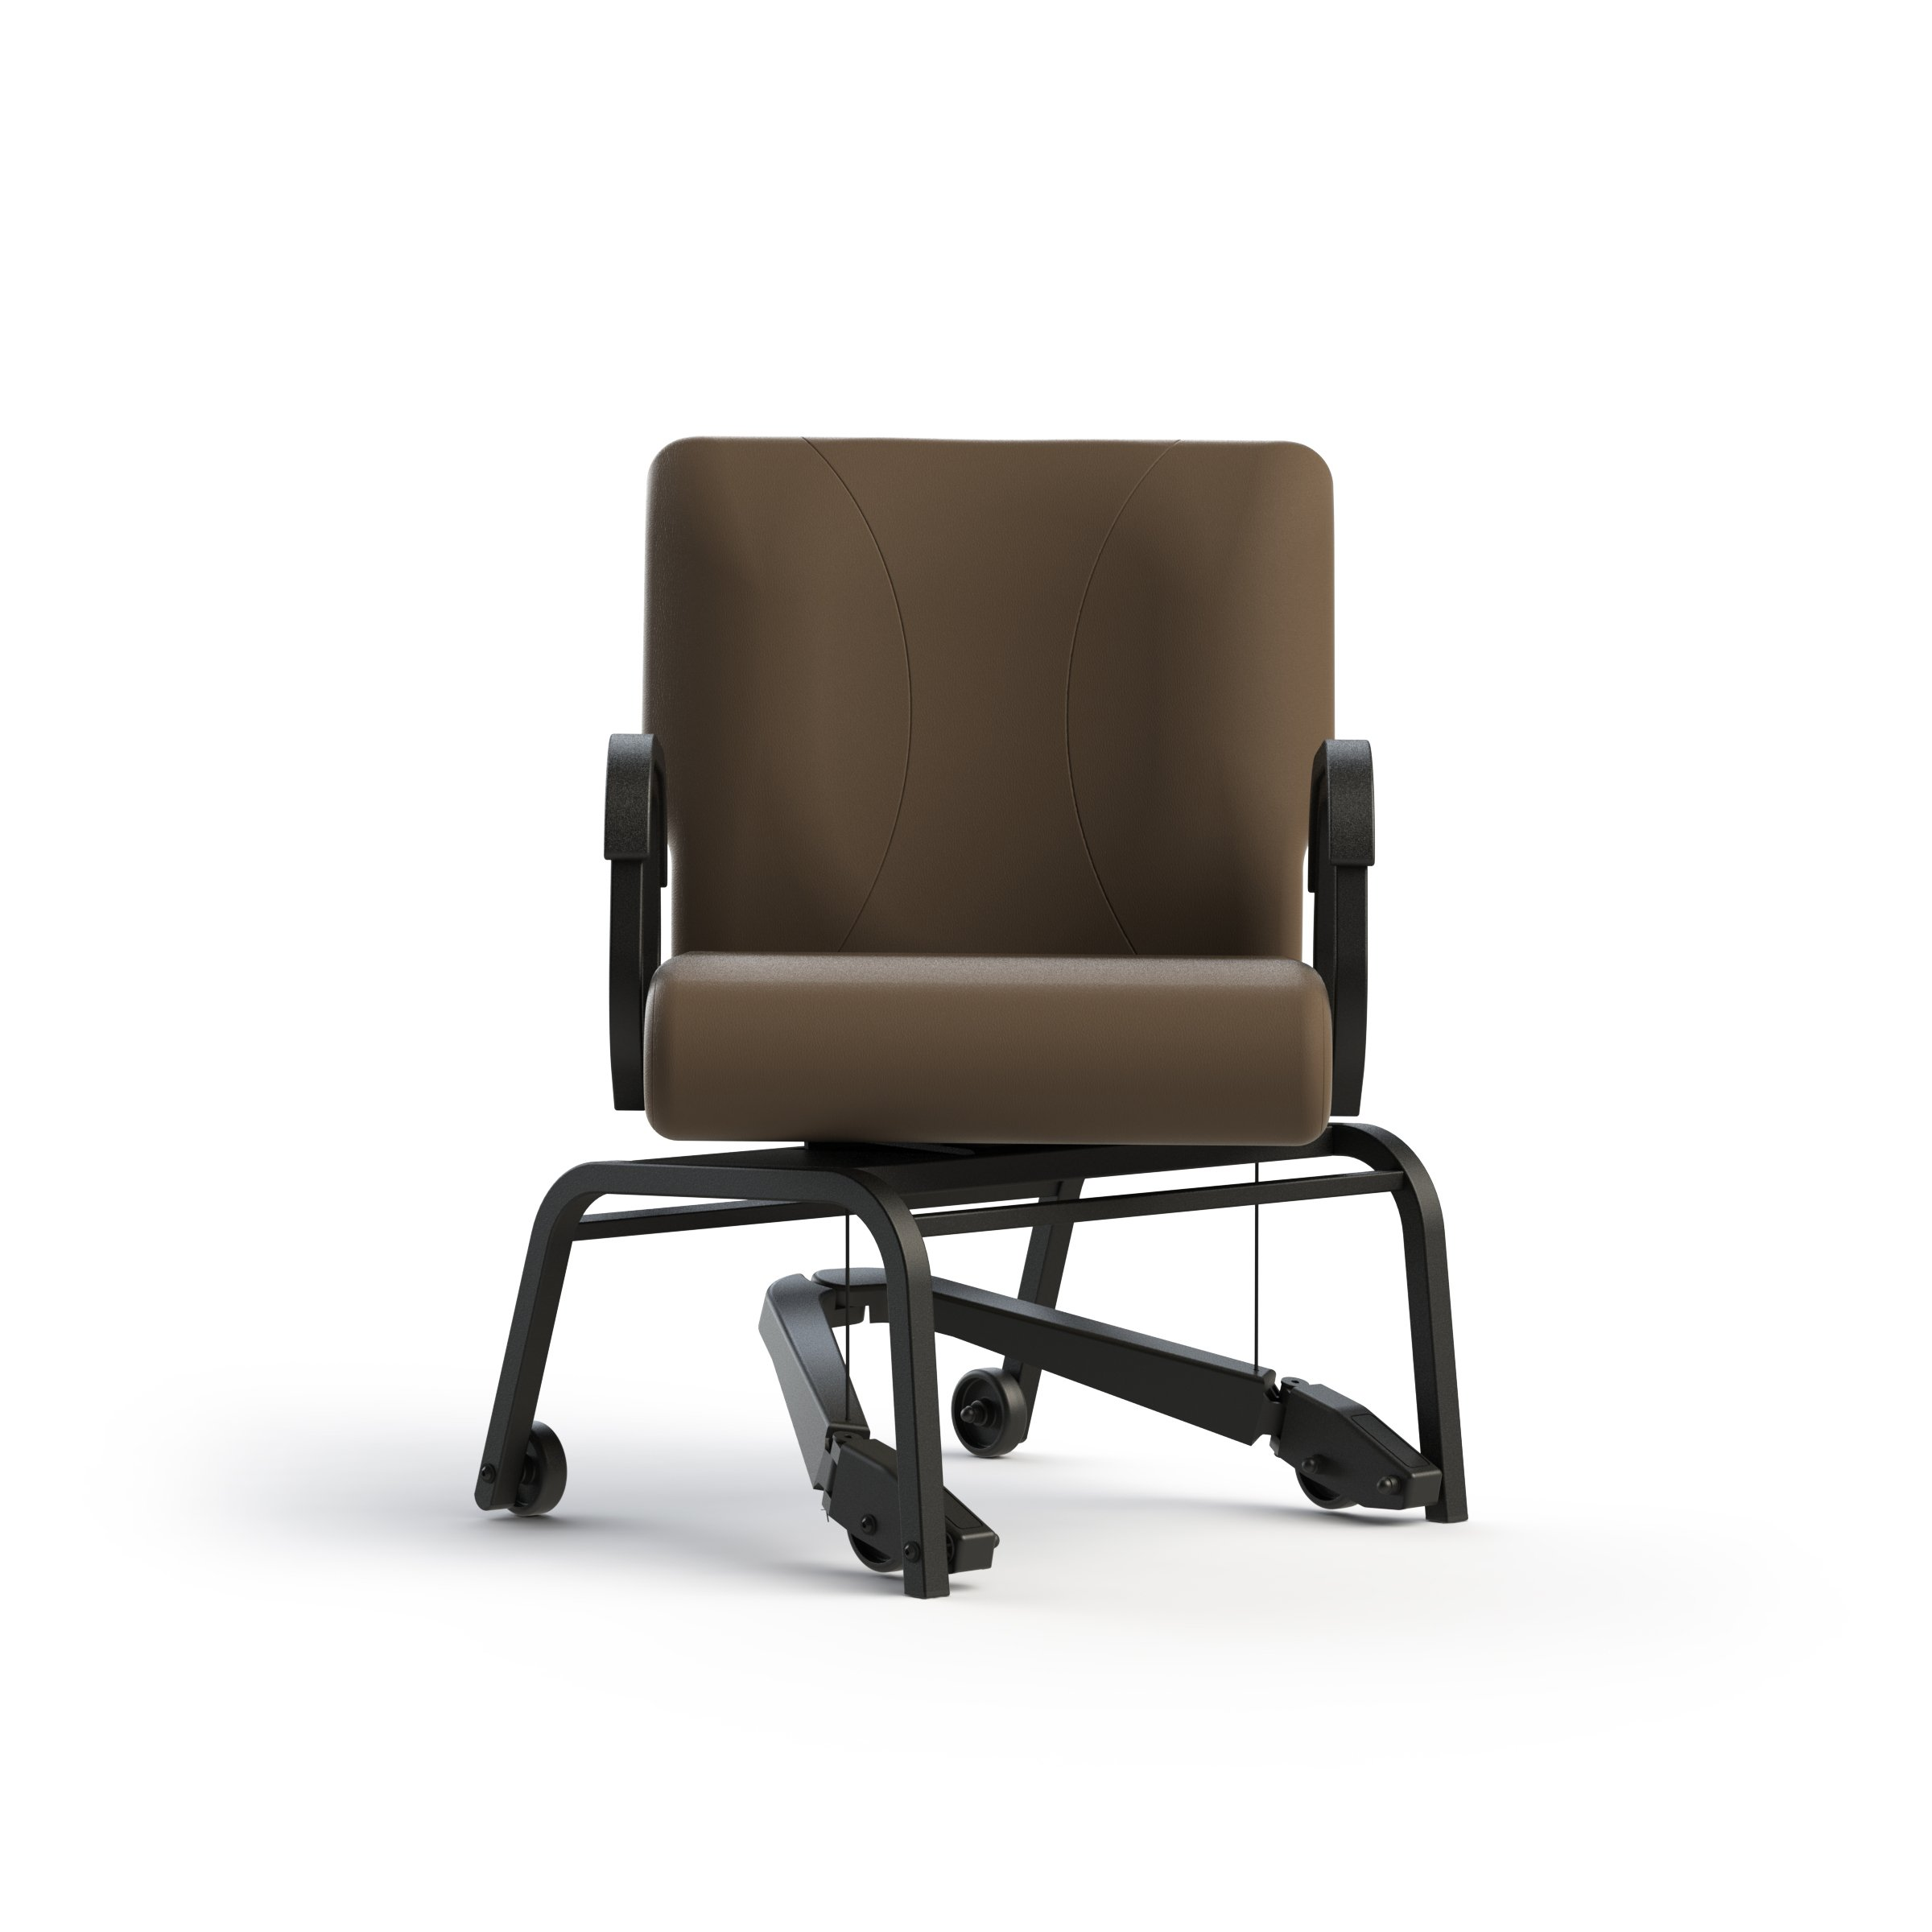 Living Made EZ LMZ-J1-5482 Titan Armed Chair with Steel Frame, Swivel, Mobility Assist Lever, Java, 22 Inch Width by Living Made EZ